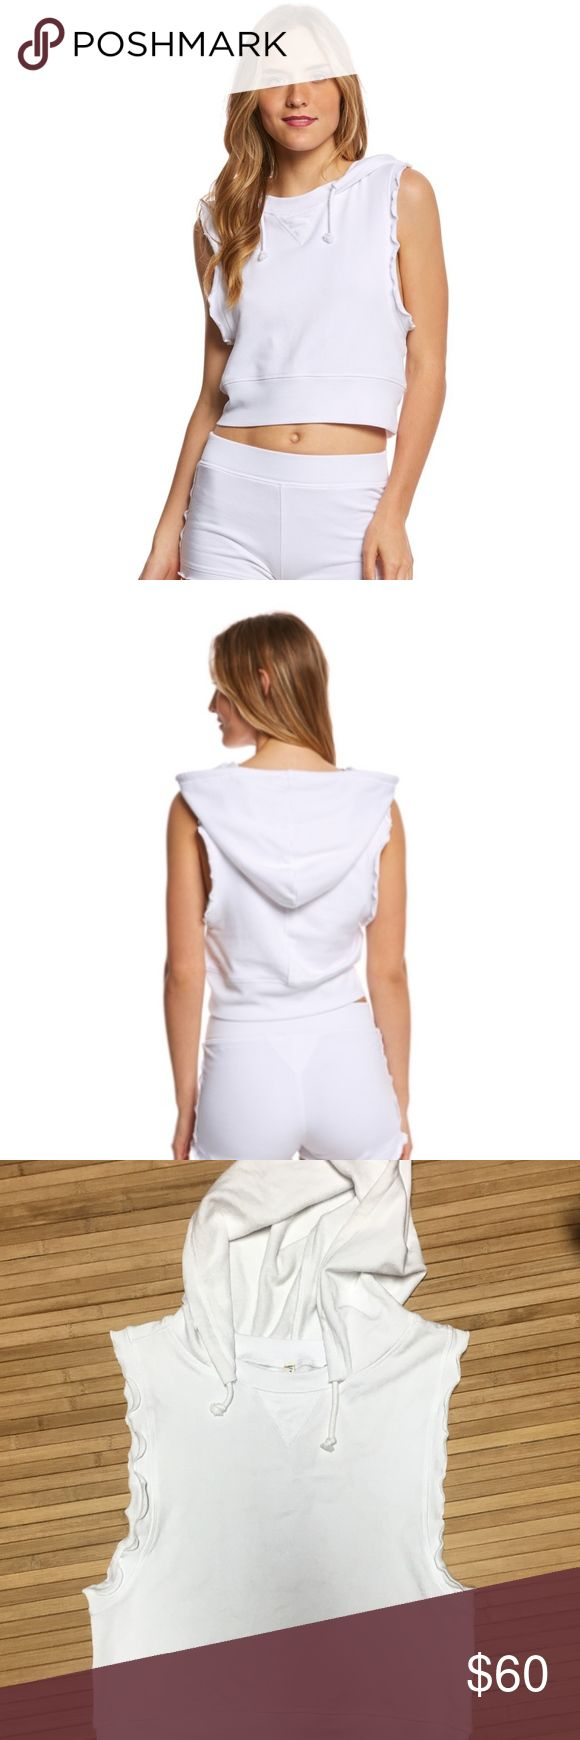 FREE PEOPLE SLEEVELESS HOODIE Relaxed fit Fabrics: 59% Cotton, 38% Rayon, 3% Spandex Color: Ivory/white Cropped sweatshirt. Classic sweatshirt triangle stitching at neckline. Attached hood with drawstrings. Sleeveless design with low-cut arm openings and raw edges. Ribbed hemline. Seam down center back with raw edge trim. Super soft and stretchy material Free People Tops Sweatshirts & Hoodies